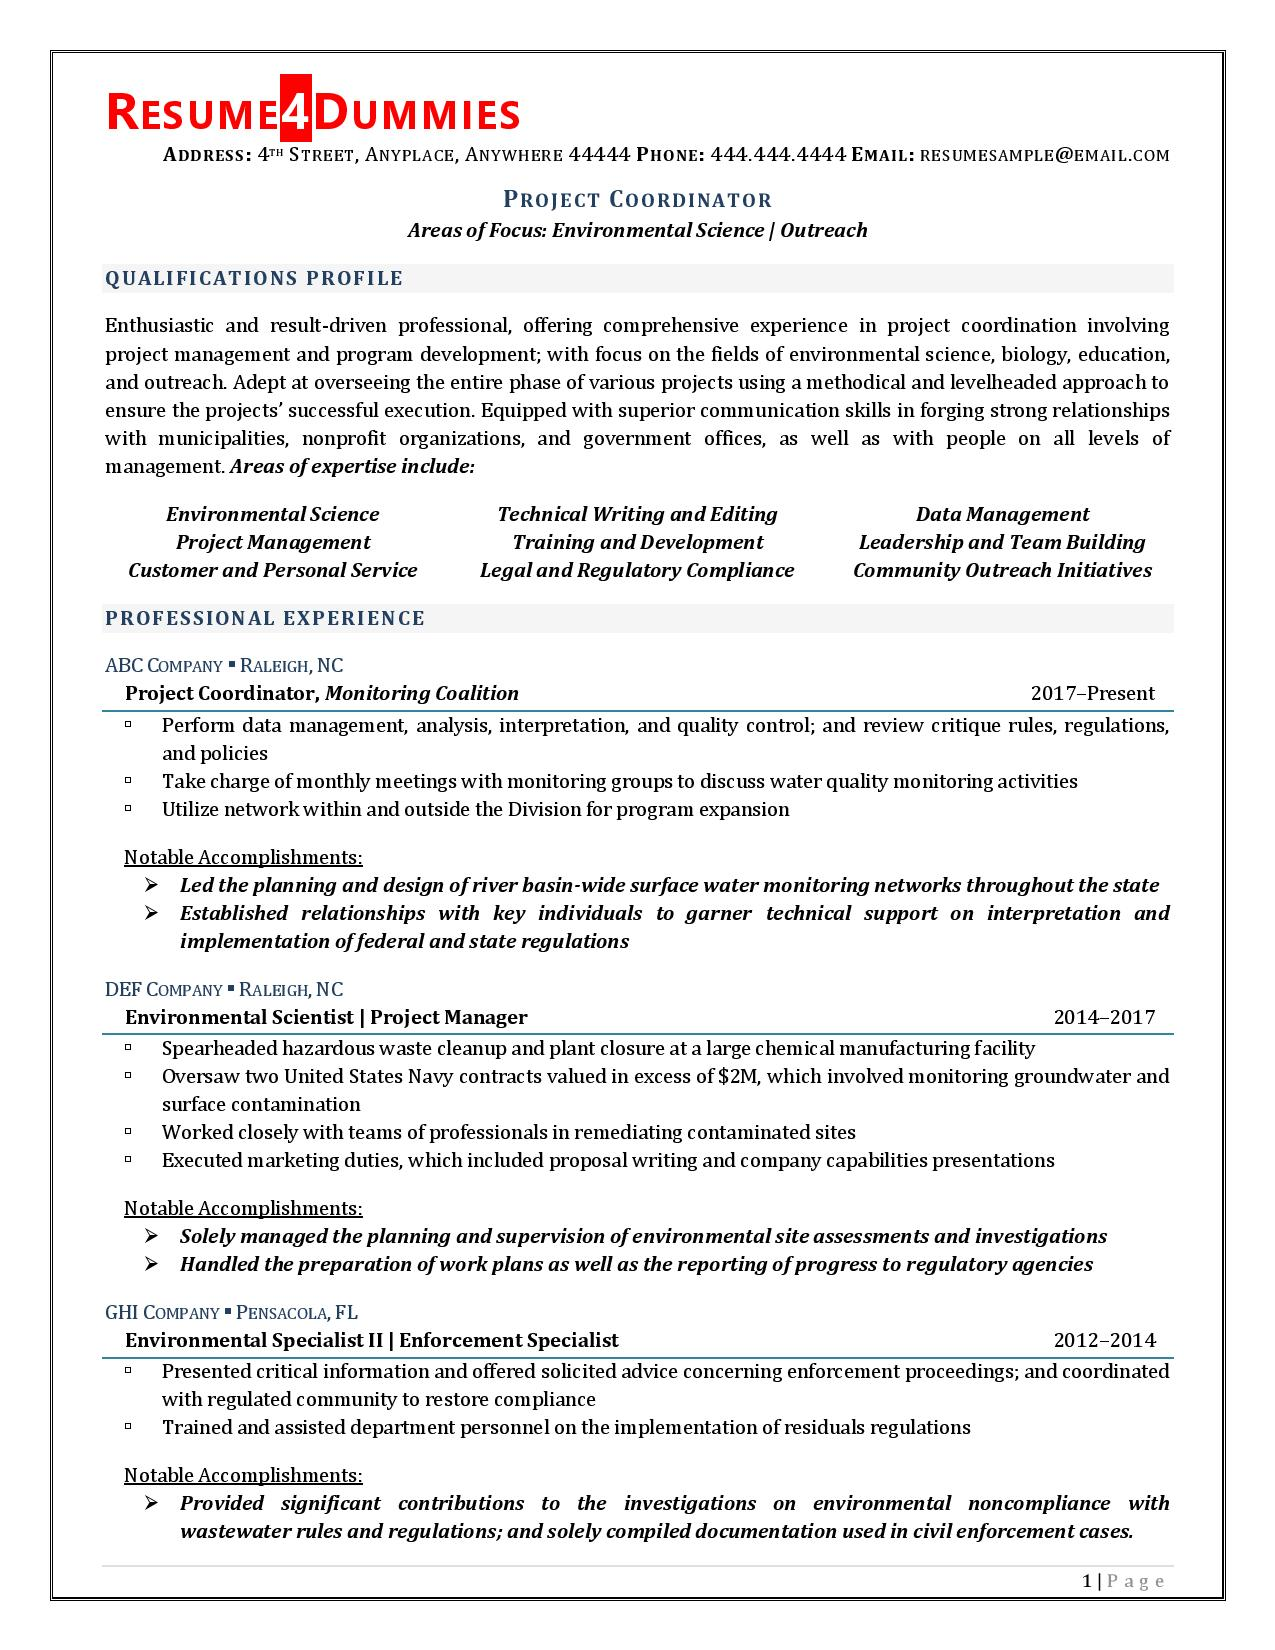 Project Coordinator Resume Example Page 1